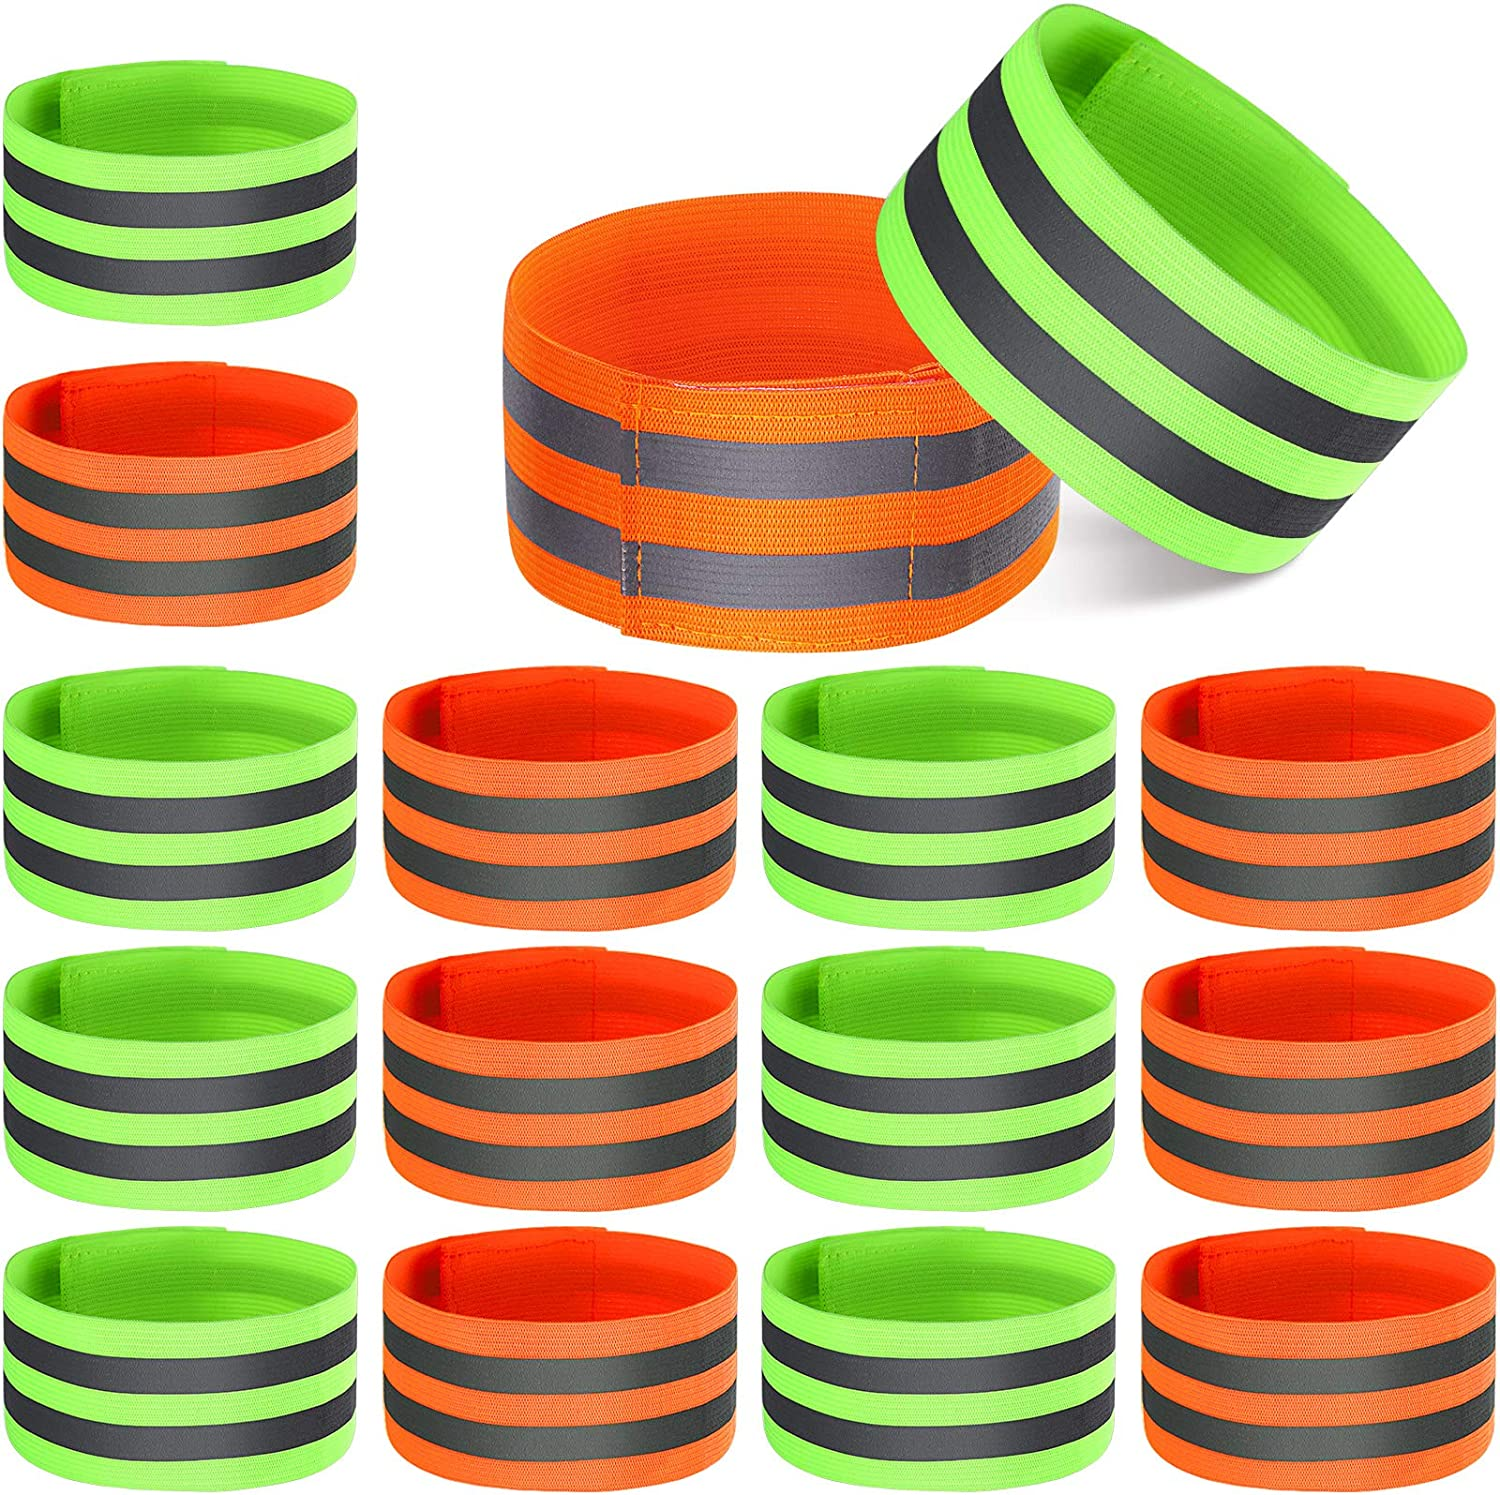 16 Pieces Reflective Bands Regular discount Reflector Ankle Arm Max 72% OFF for Wrist